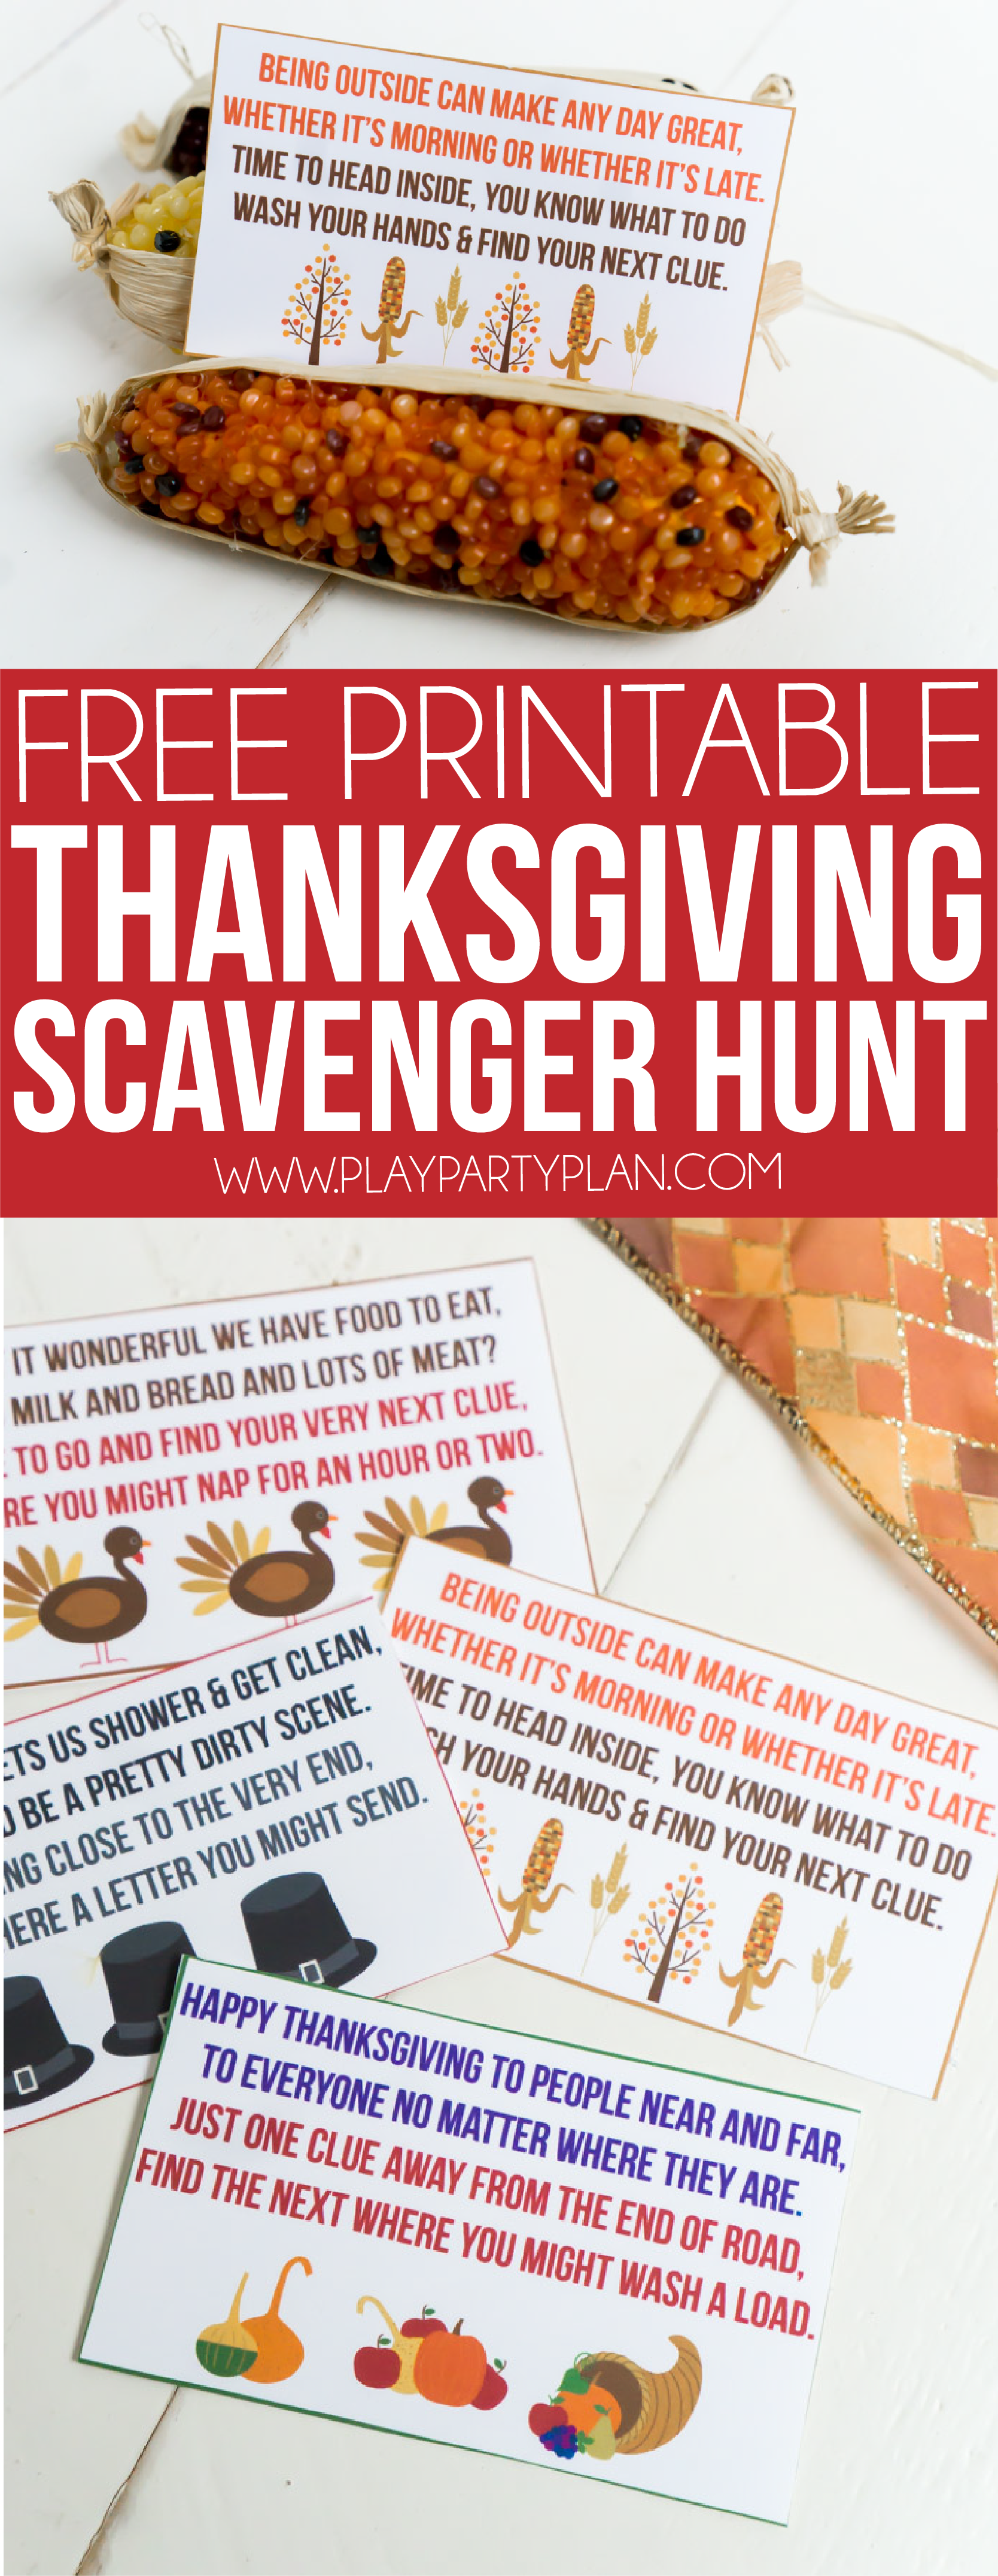 Love these Thanksgiving scavenger hunt ideas for kids! It's easy! Just print out the clues that send kids around the home and outdoor and see what they can find using the riddles on the printable cards! Perfect for preschoolers, for toddlers, or for family night activities! Definitely one of the cutest Thanksgiving games!